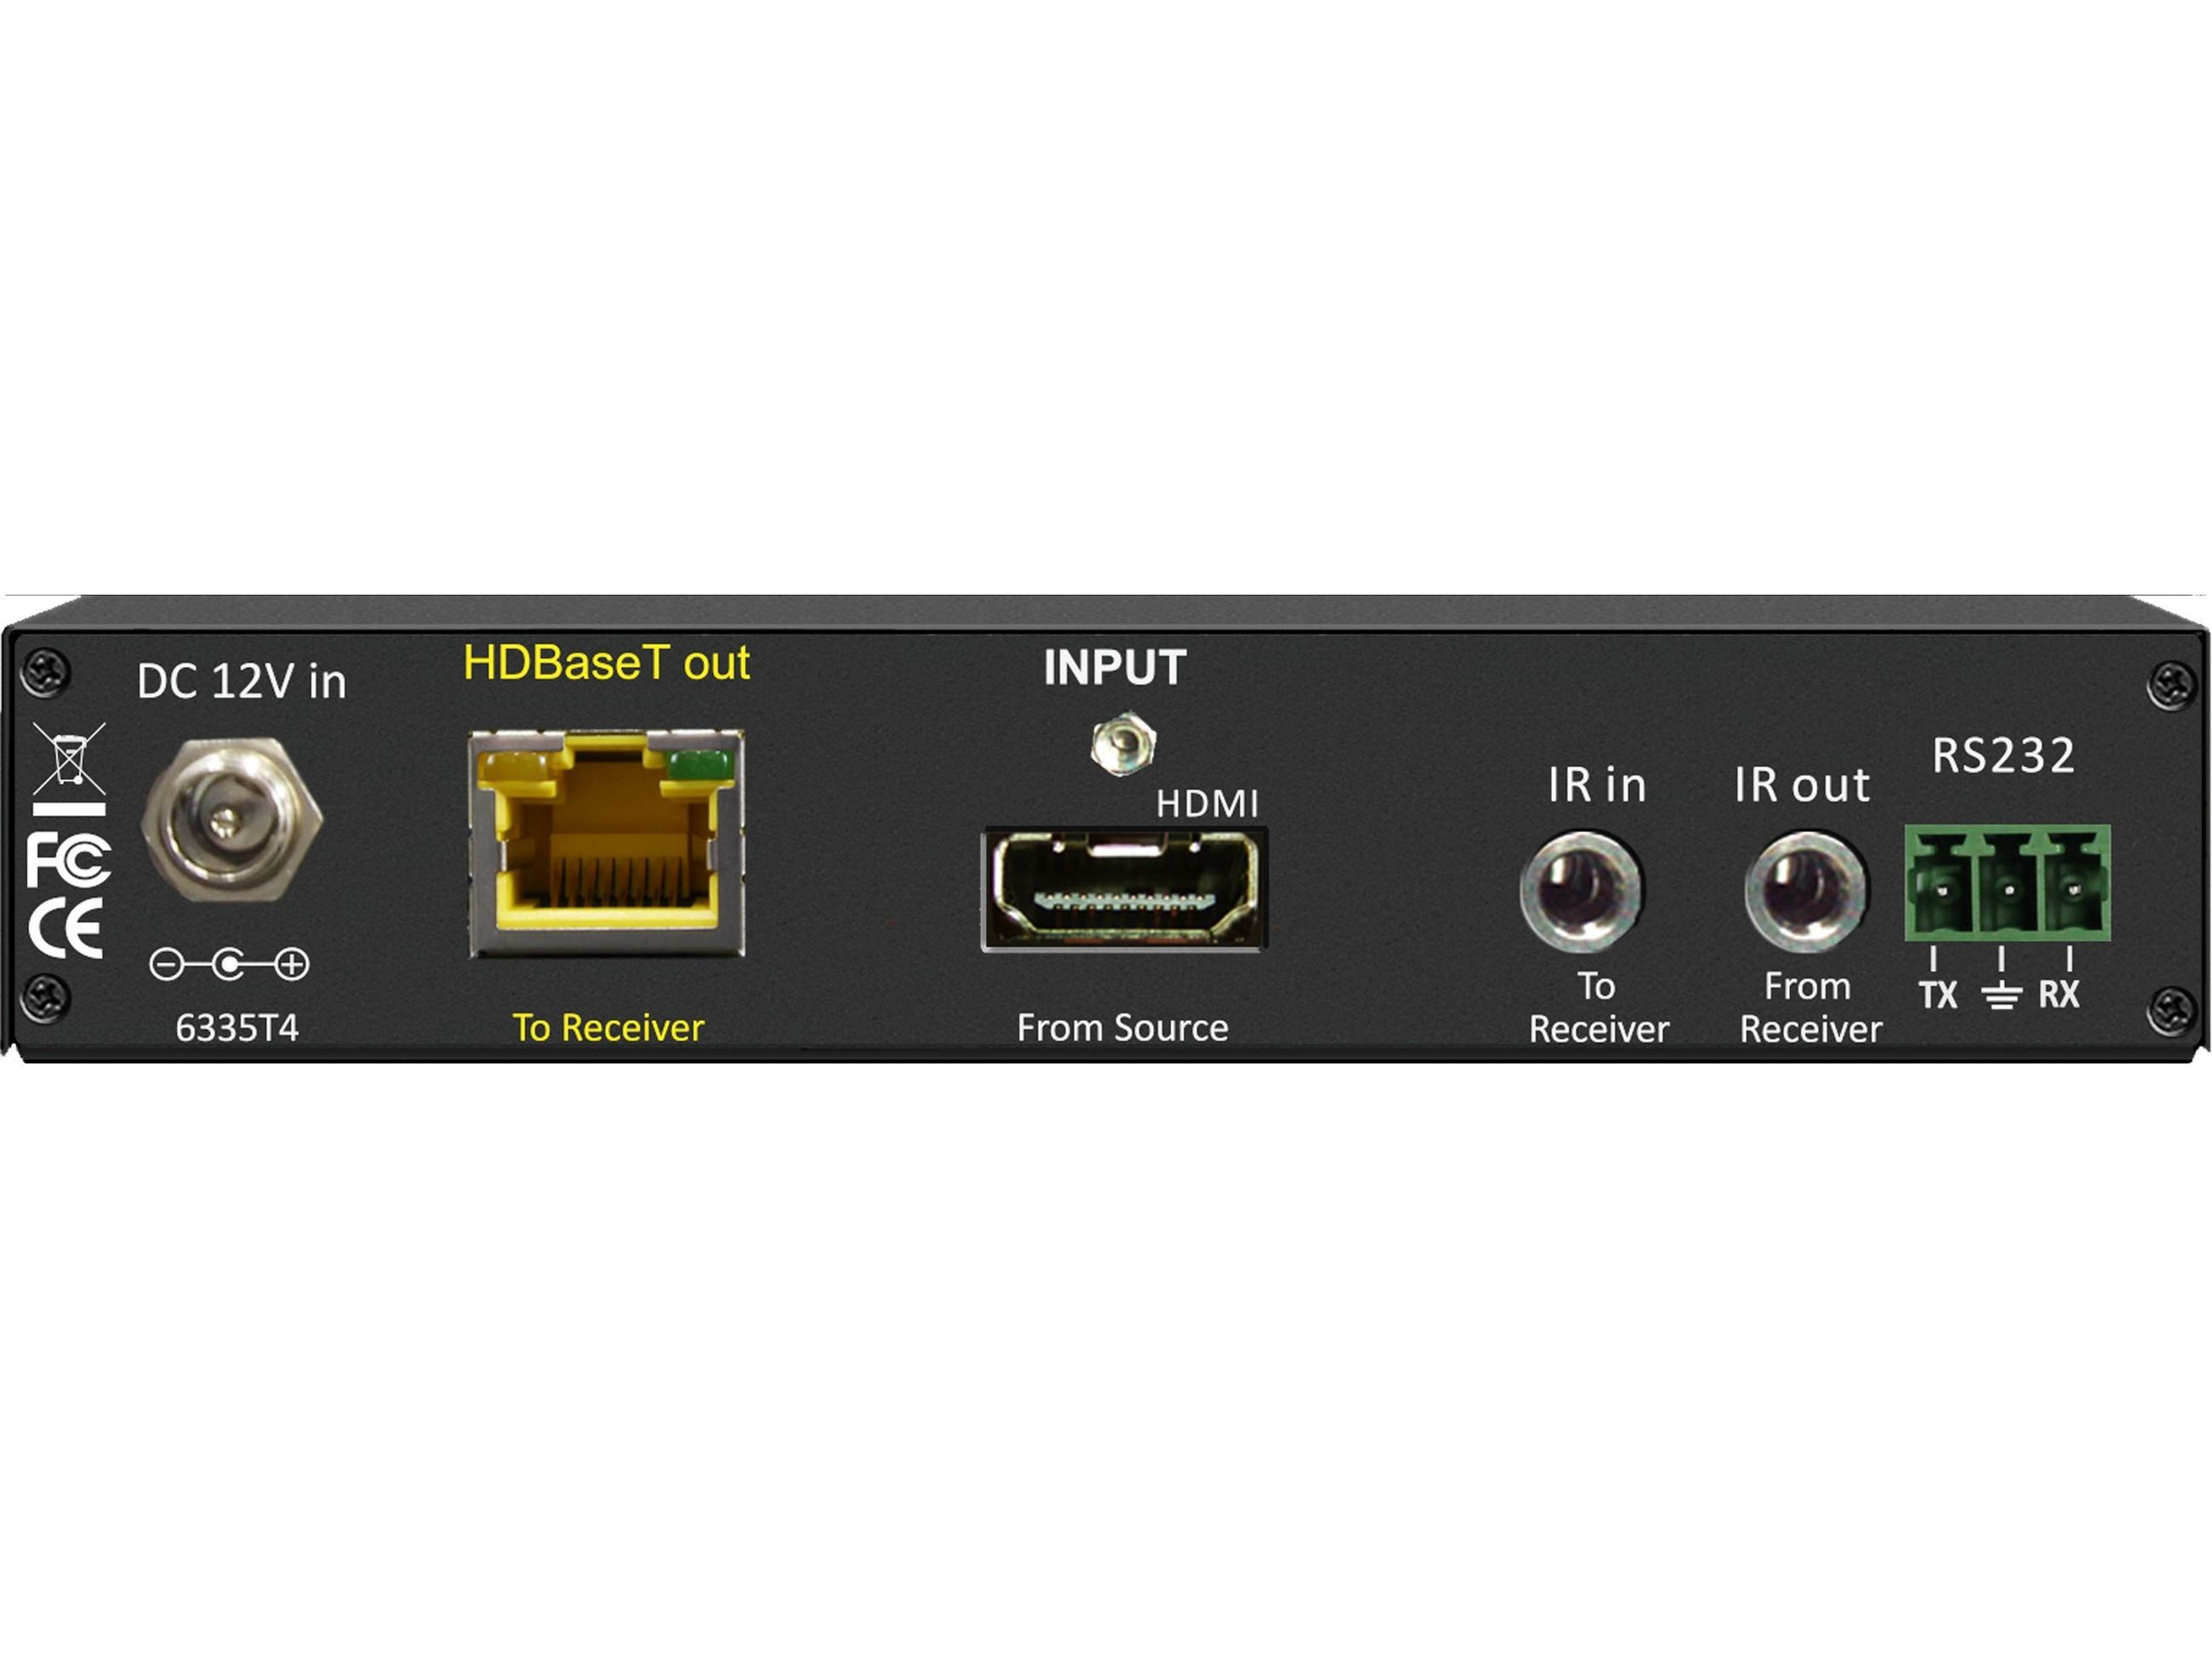 Shinybow SB-6335T4 4 Play HDBaseT Extender (Transmitter) up to 330 ft with 2-way IR/RS-232